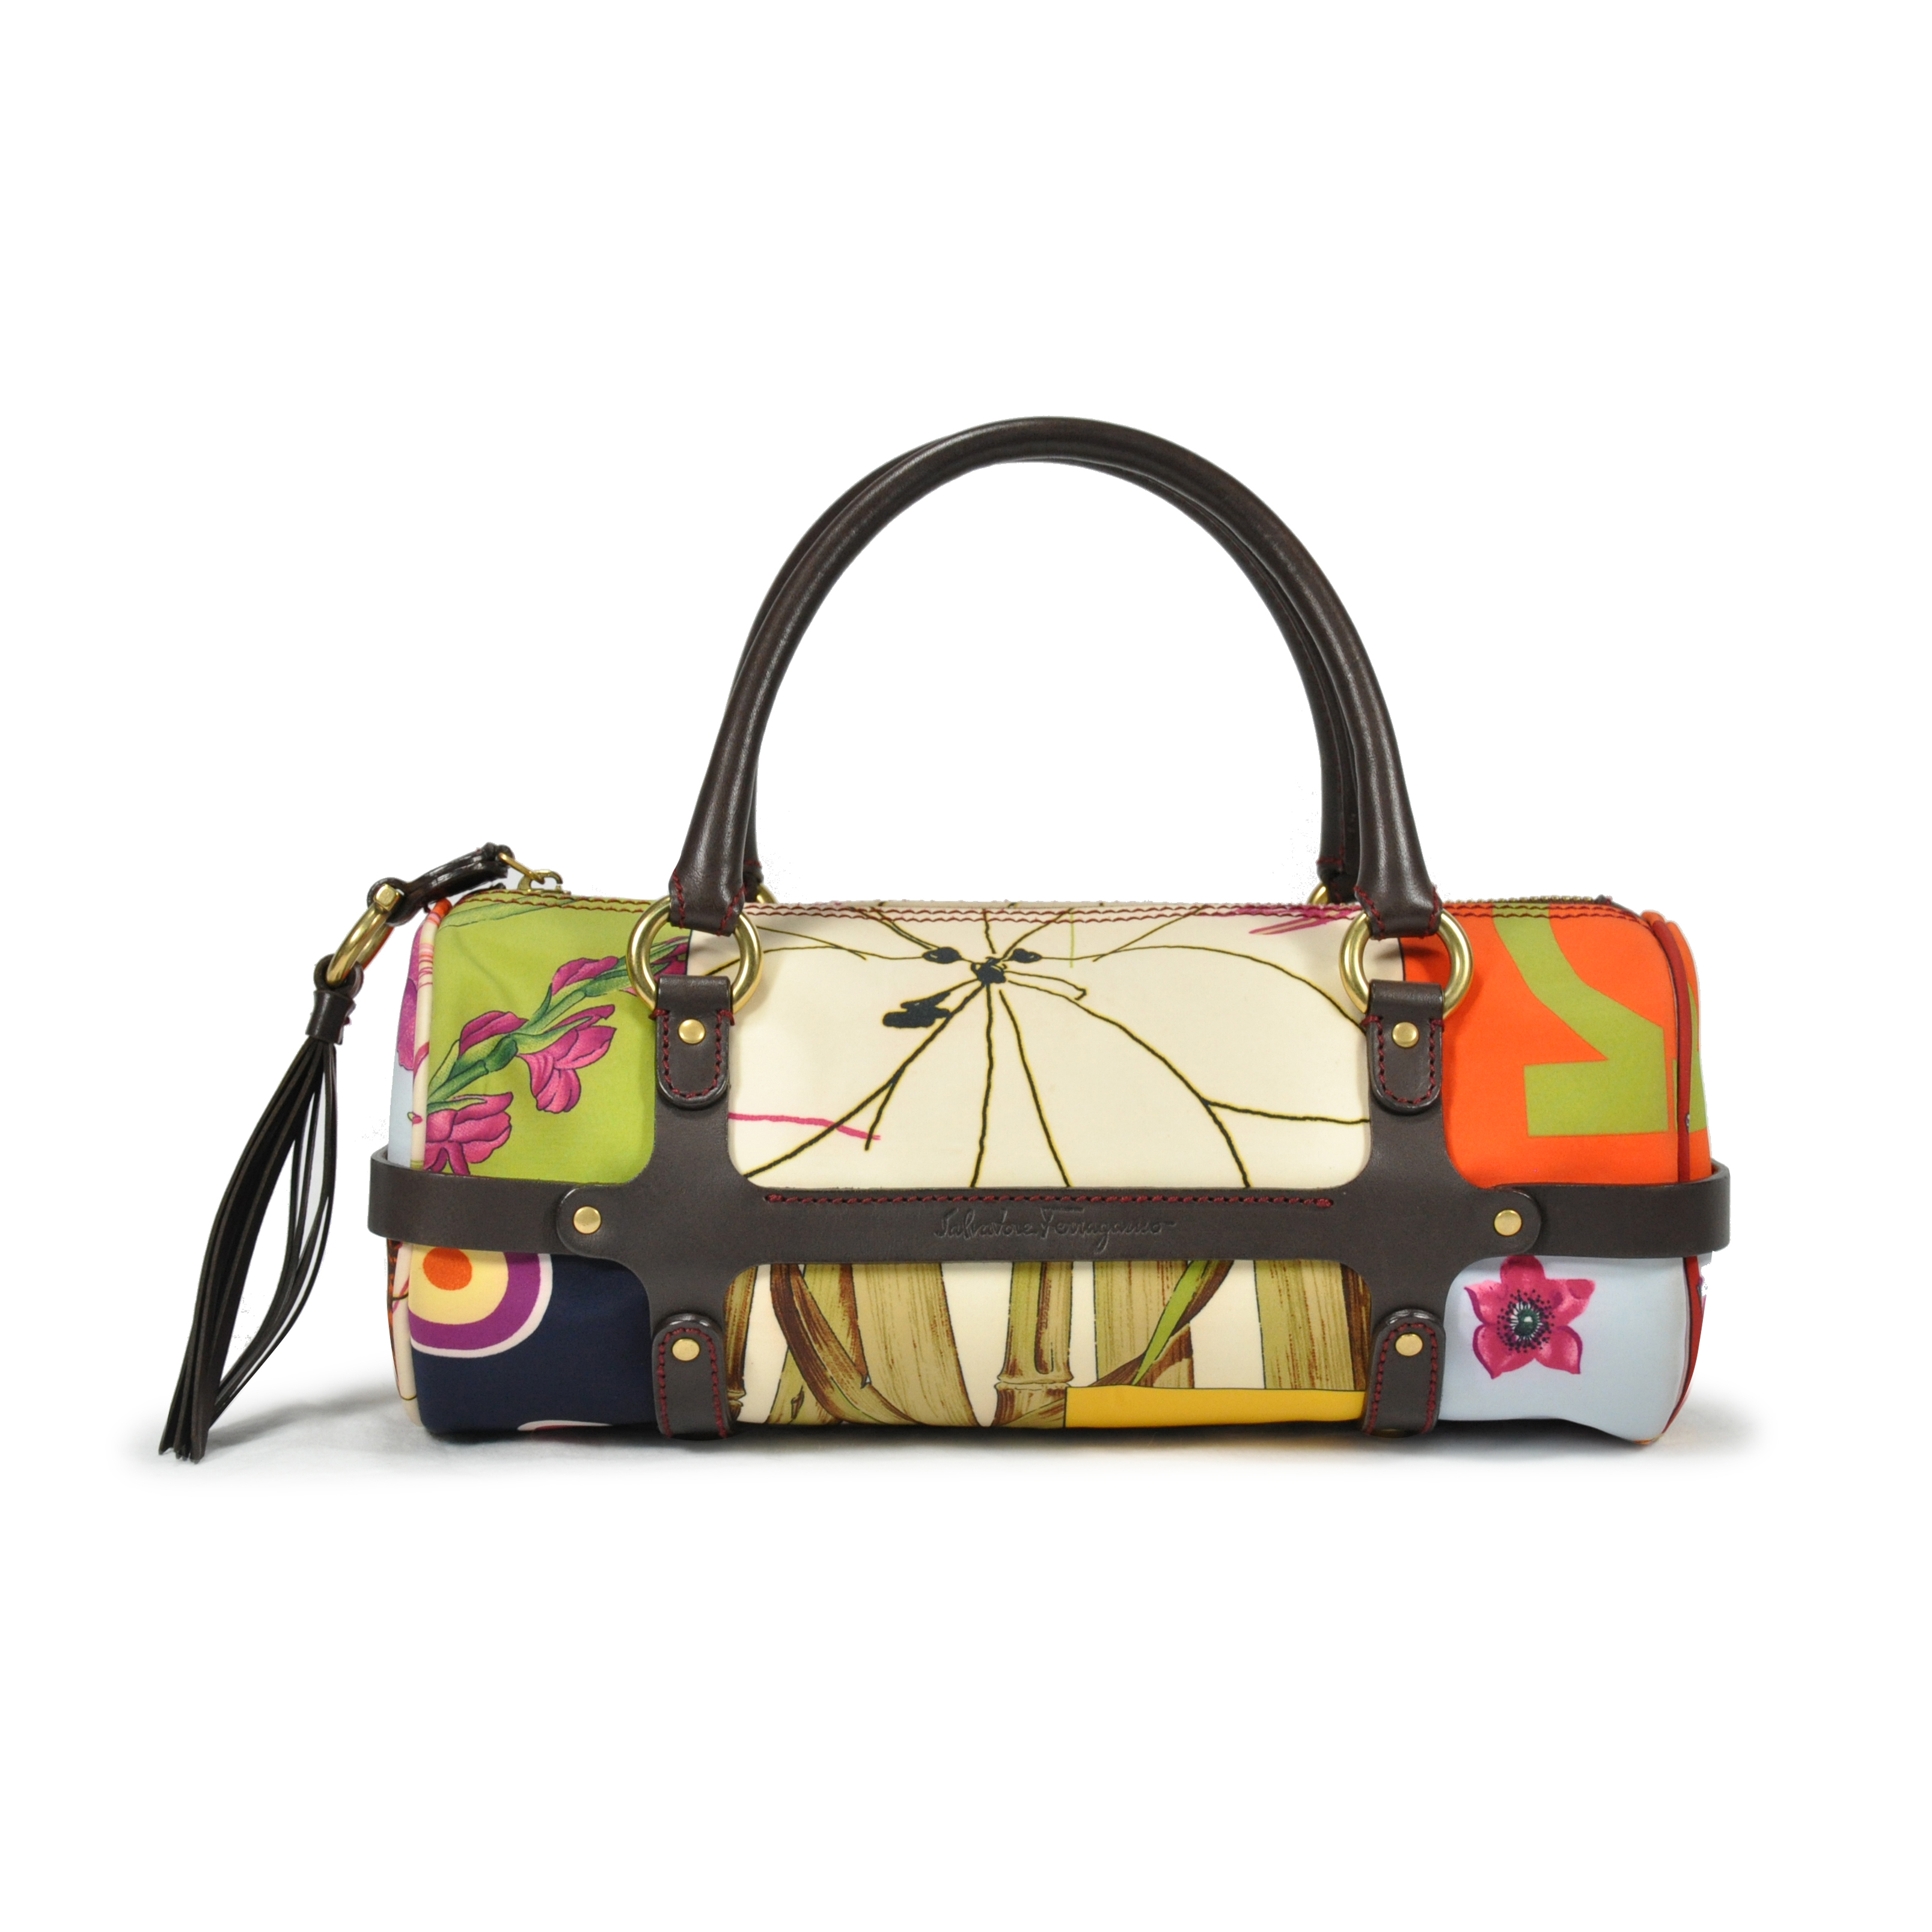 Authentic Pre Owned Salvatore Ferragamo Floral Print Bag (PSS-243-00001)    THE FIFTH COLLECTION® b4e1f24b6b